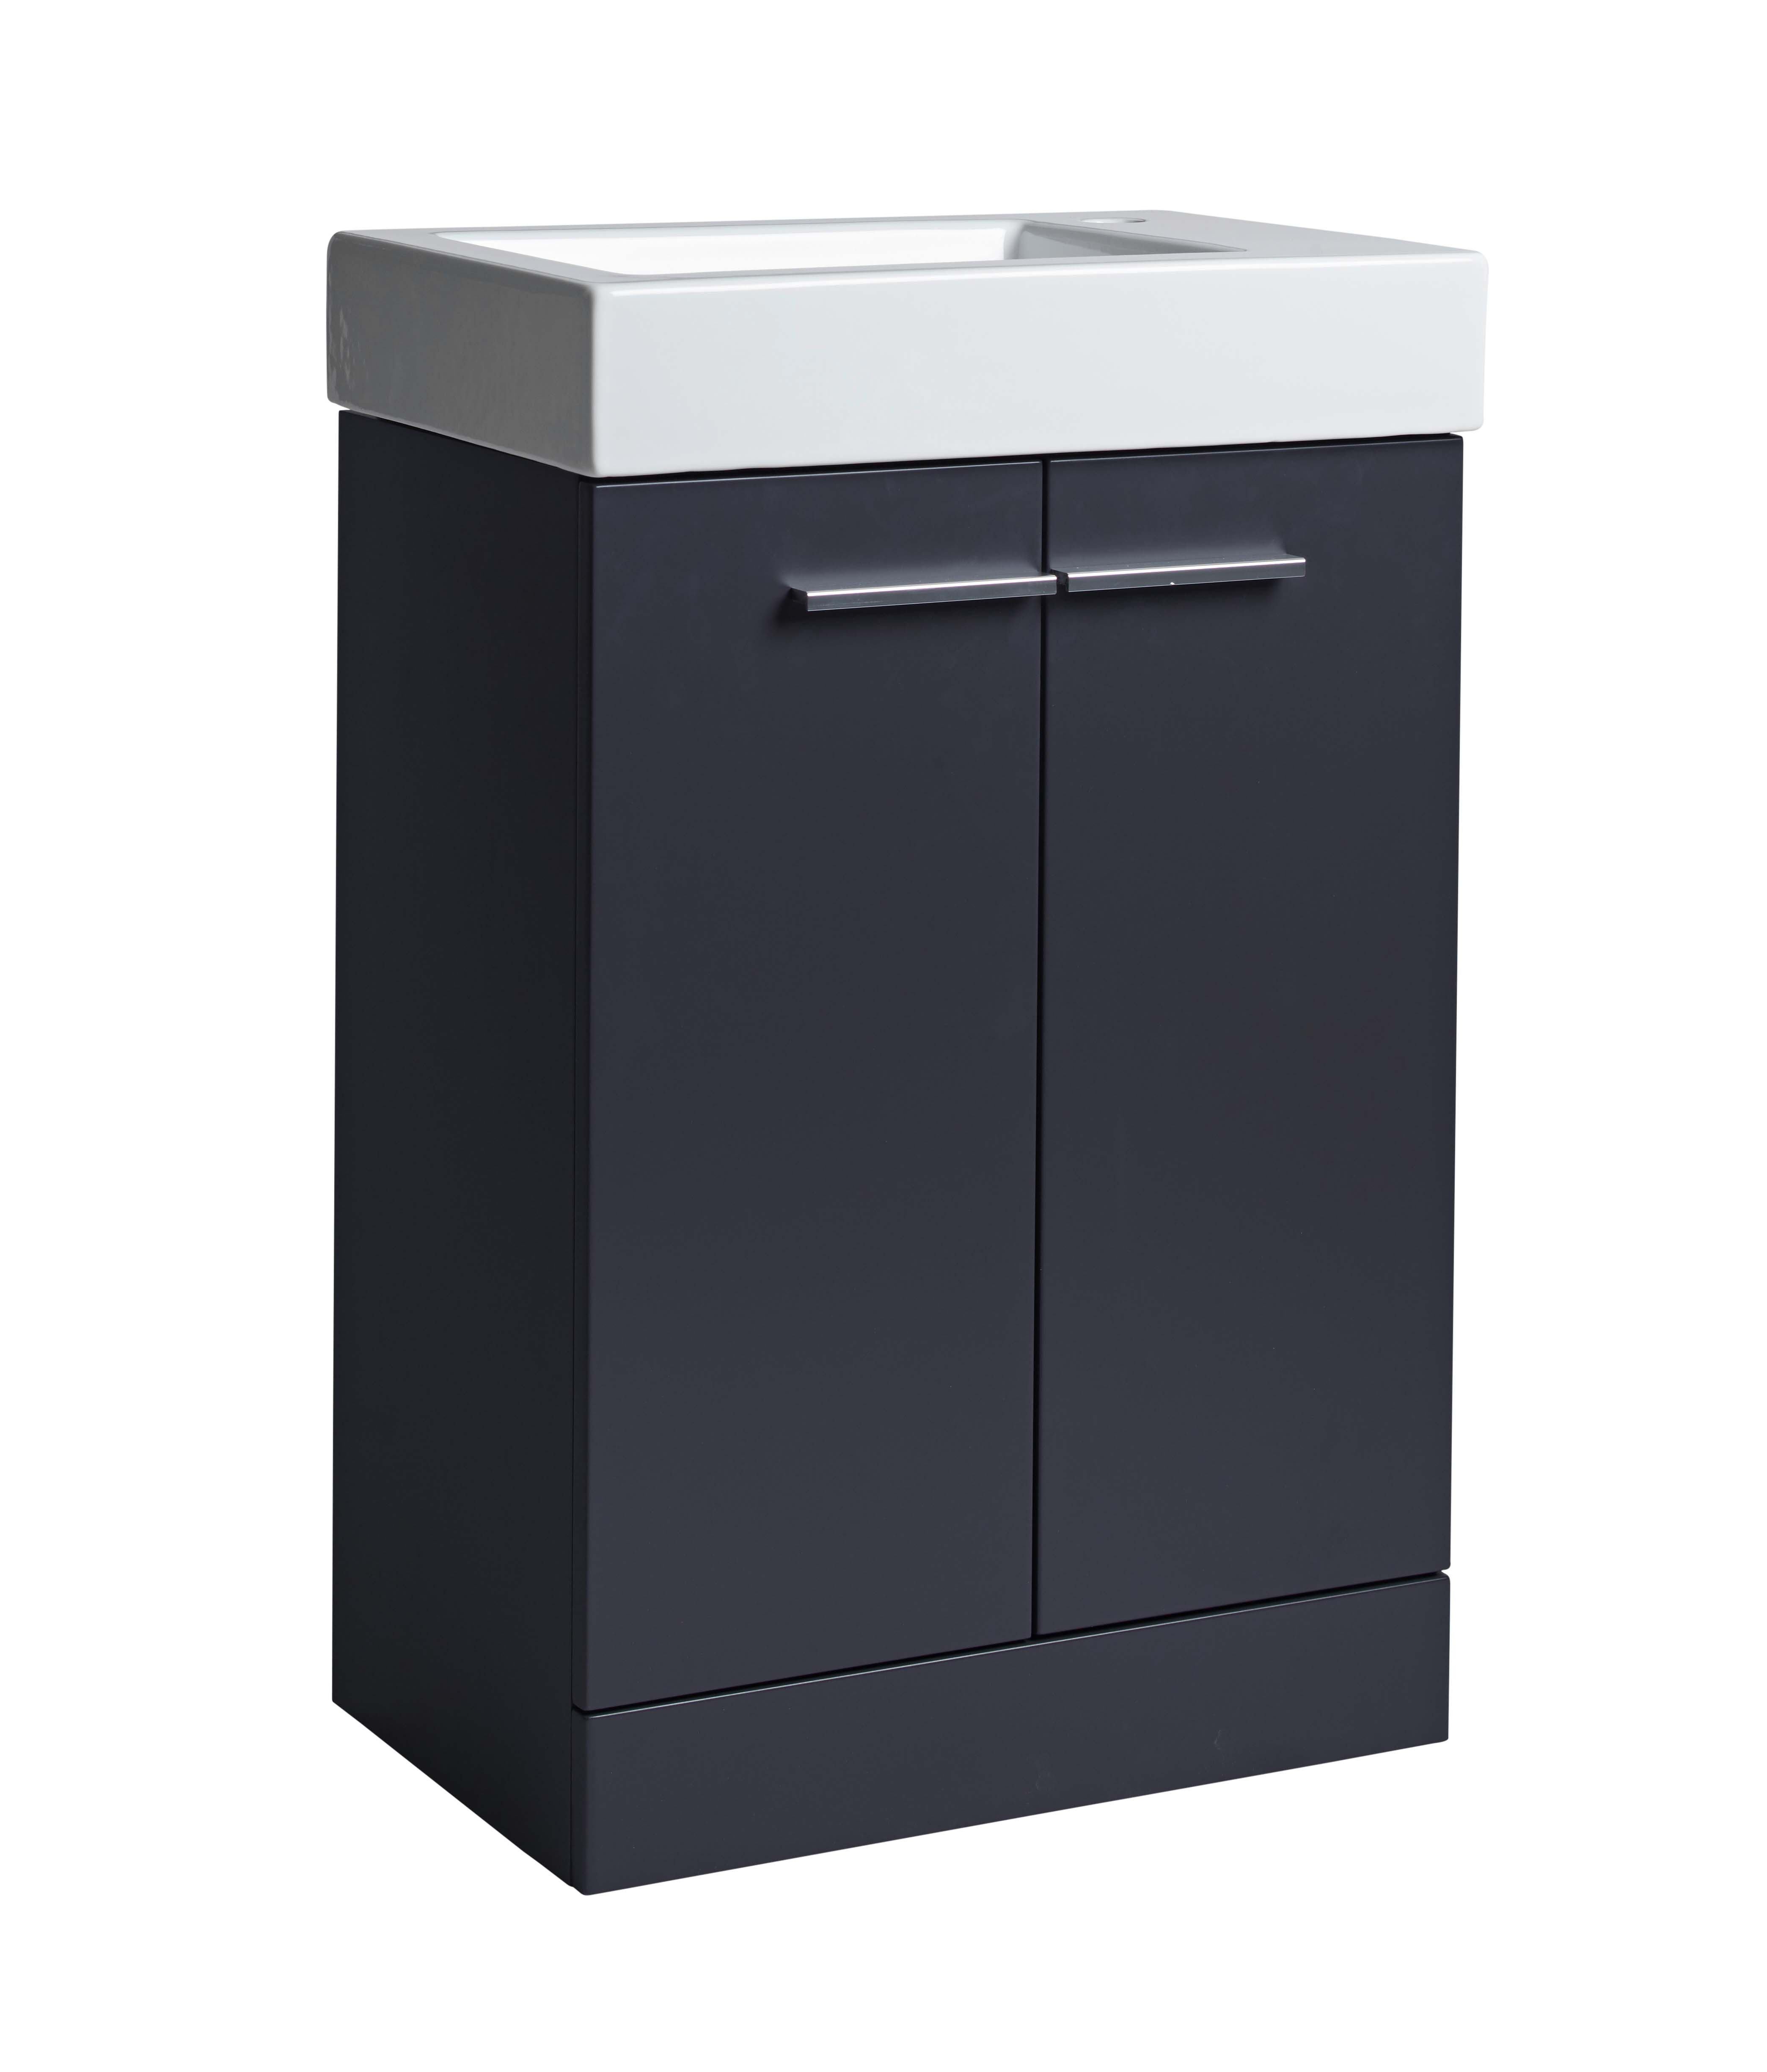 click on 56cm Basin and Floor Standing Vanity Unit image to enlarge